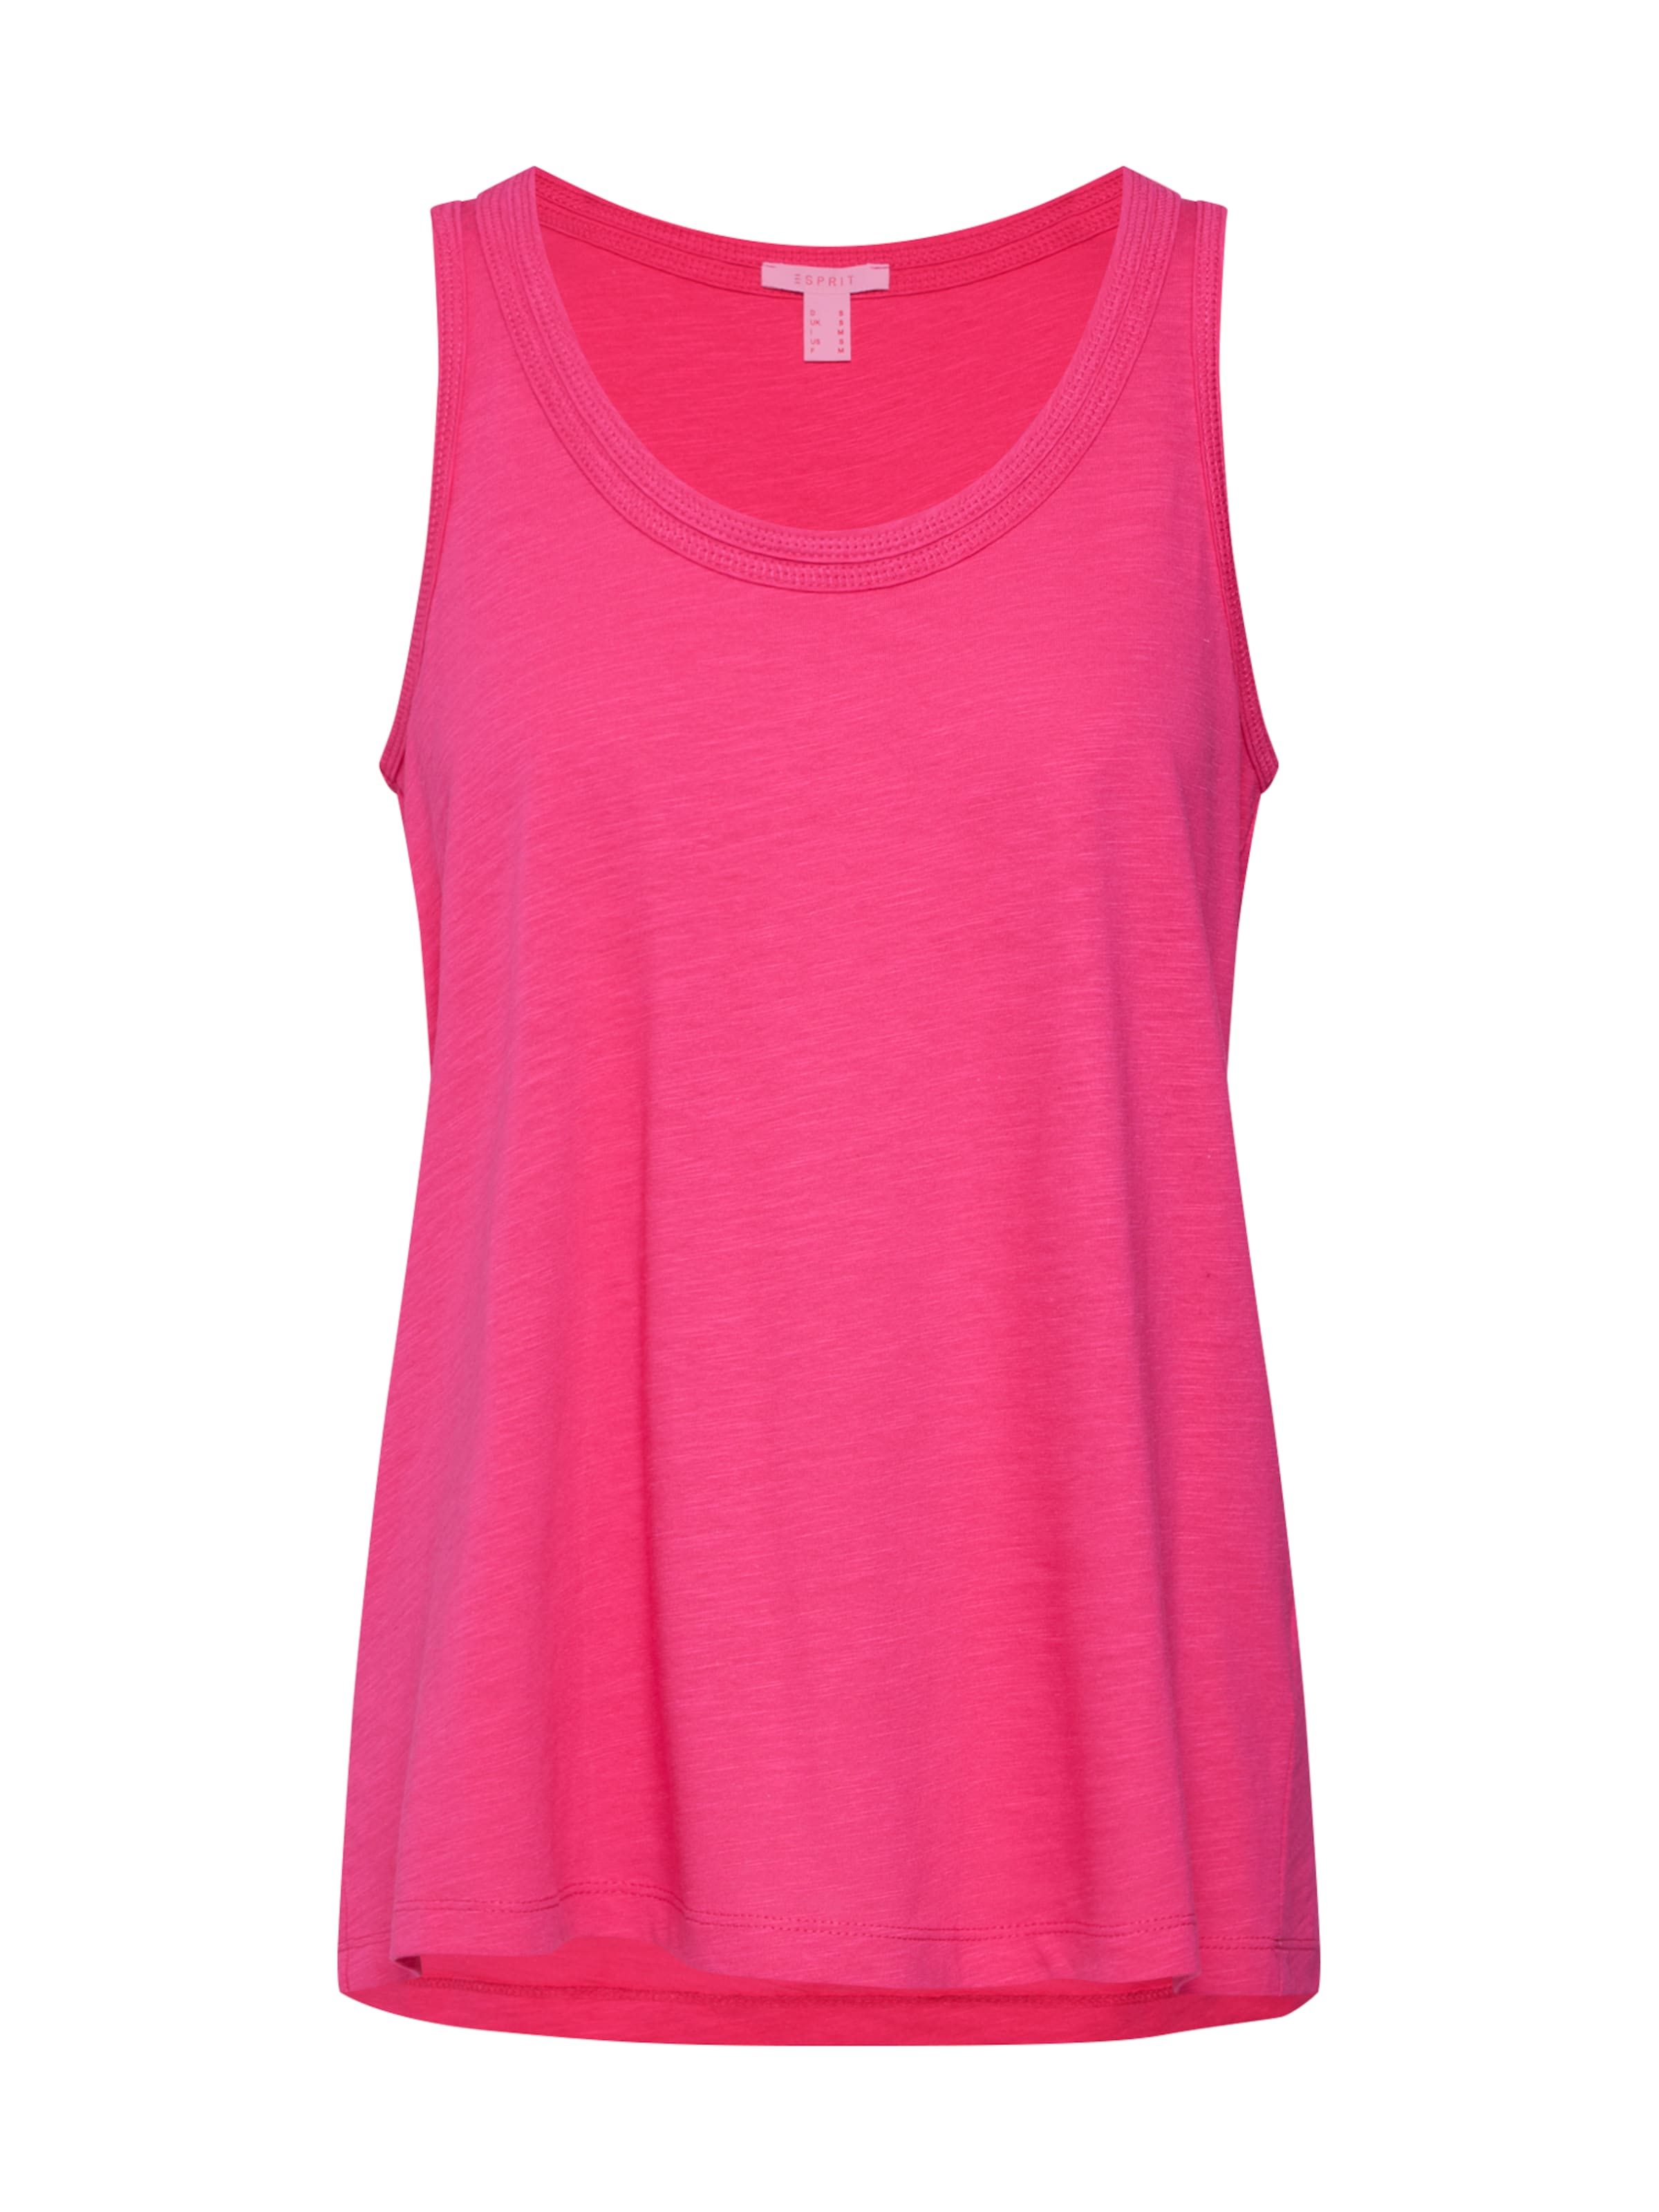 Add In 'flw Esprit Top Neonpink Top' 8nv0ywPNmO